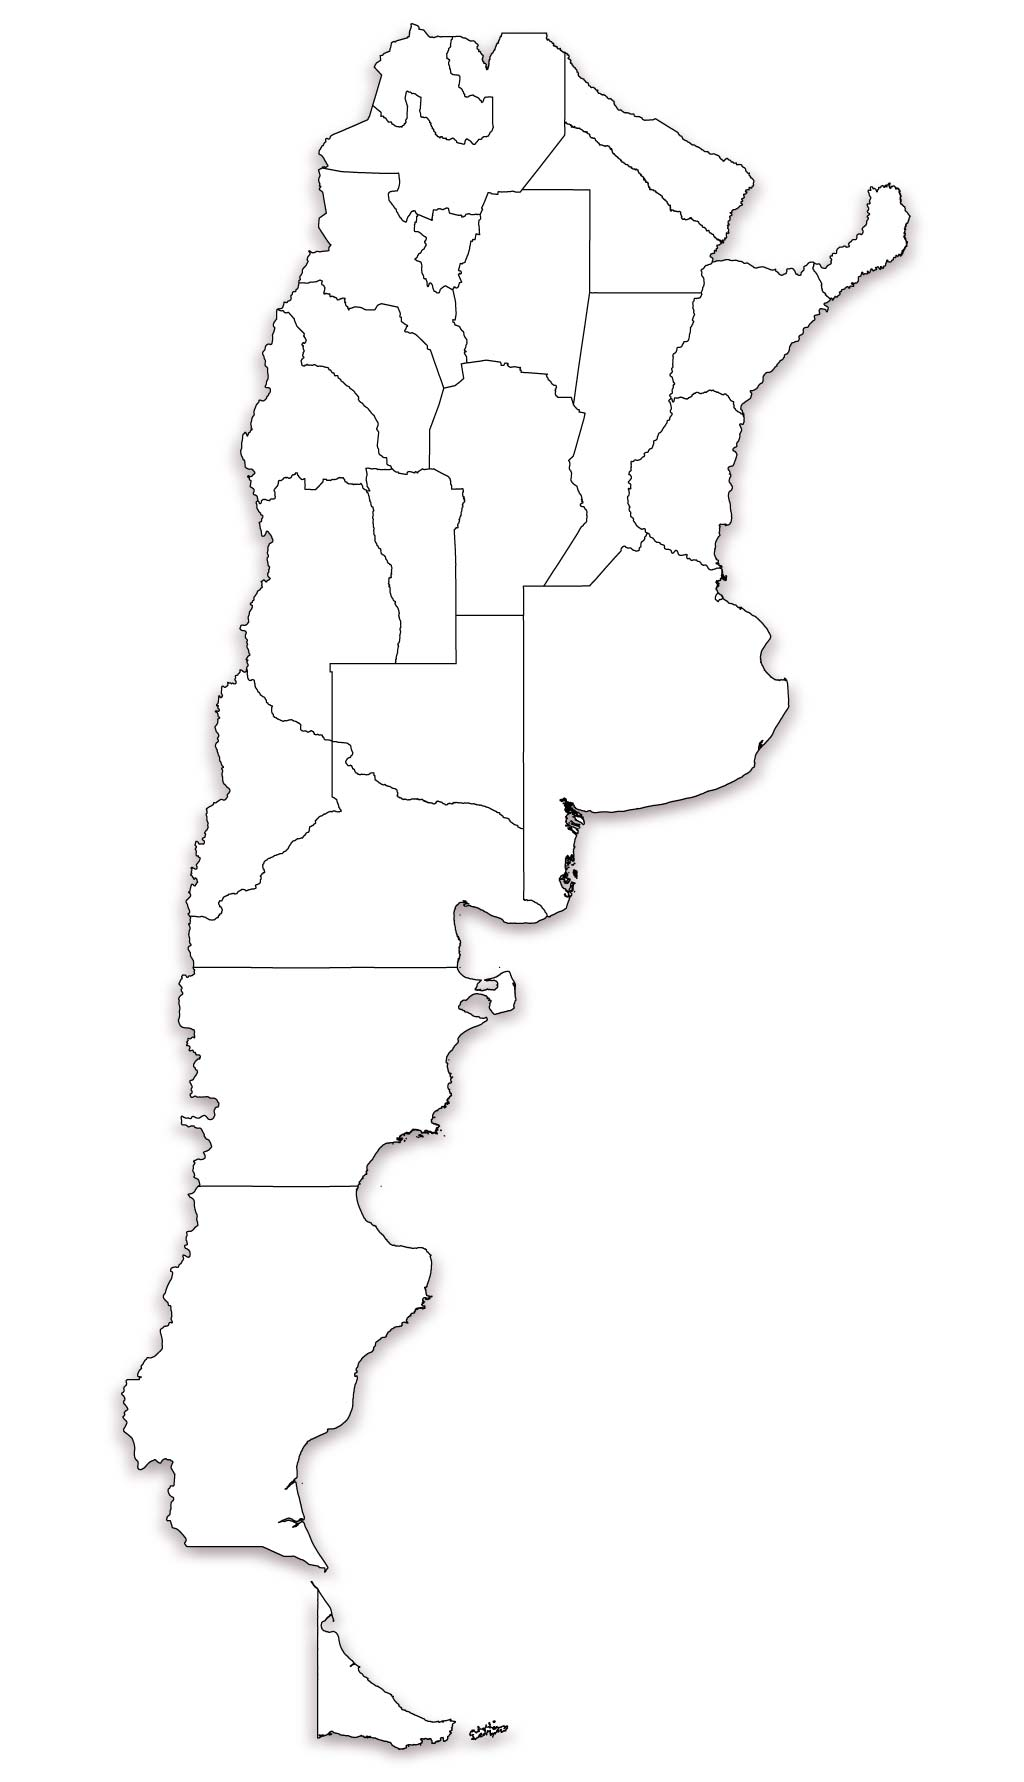 Blank Map Of Argentina Outline Map Of Argentina - Argentina map black and white